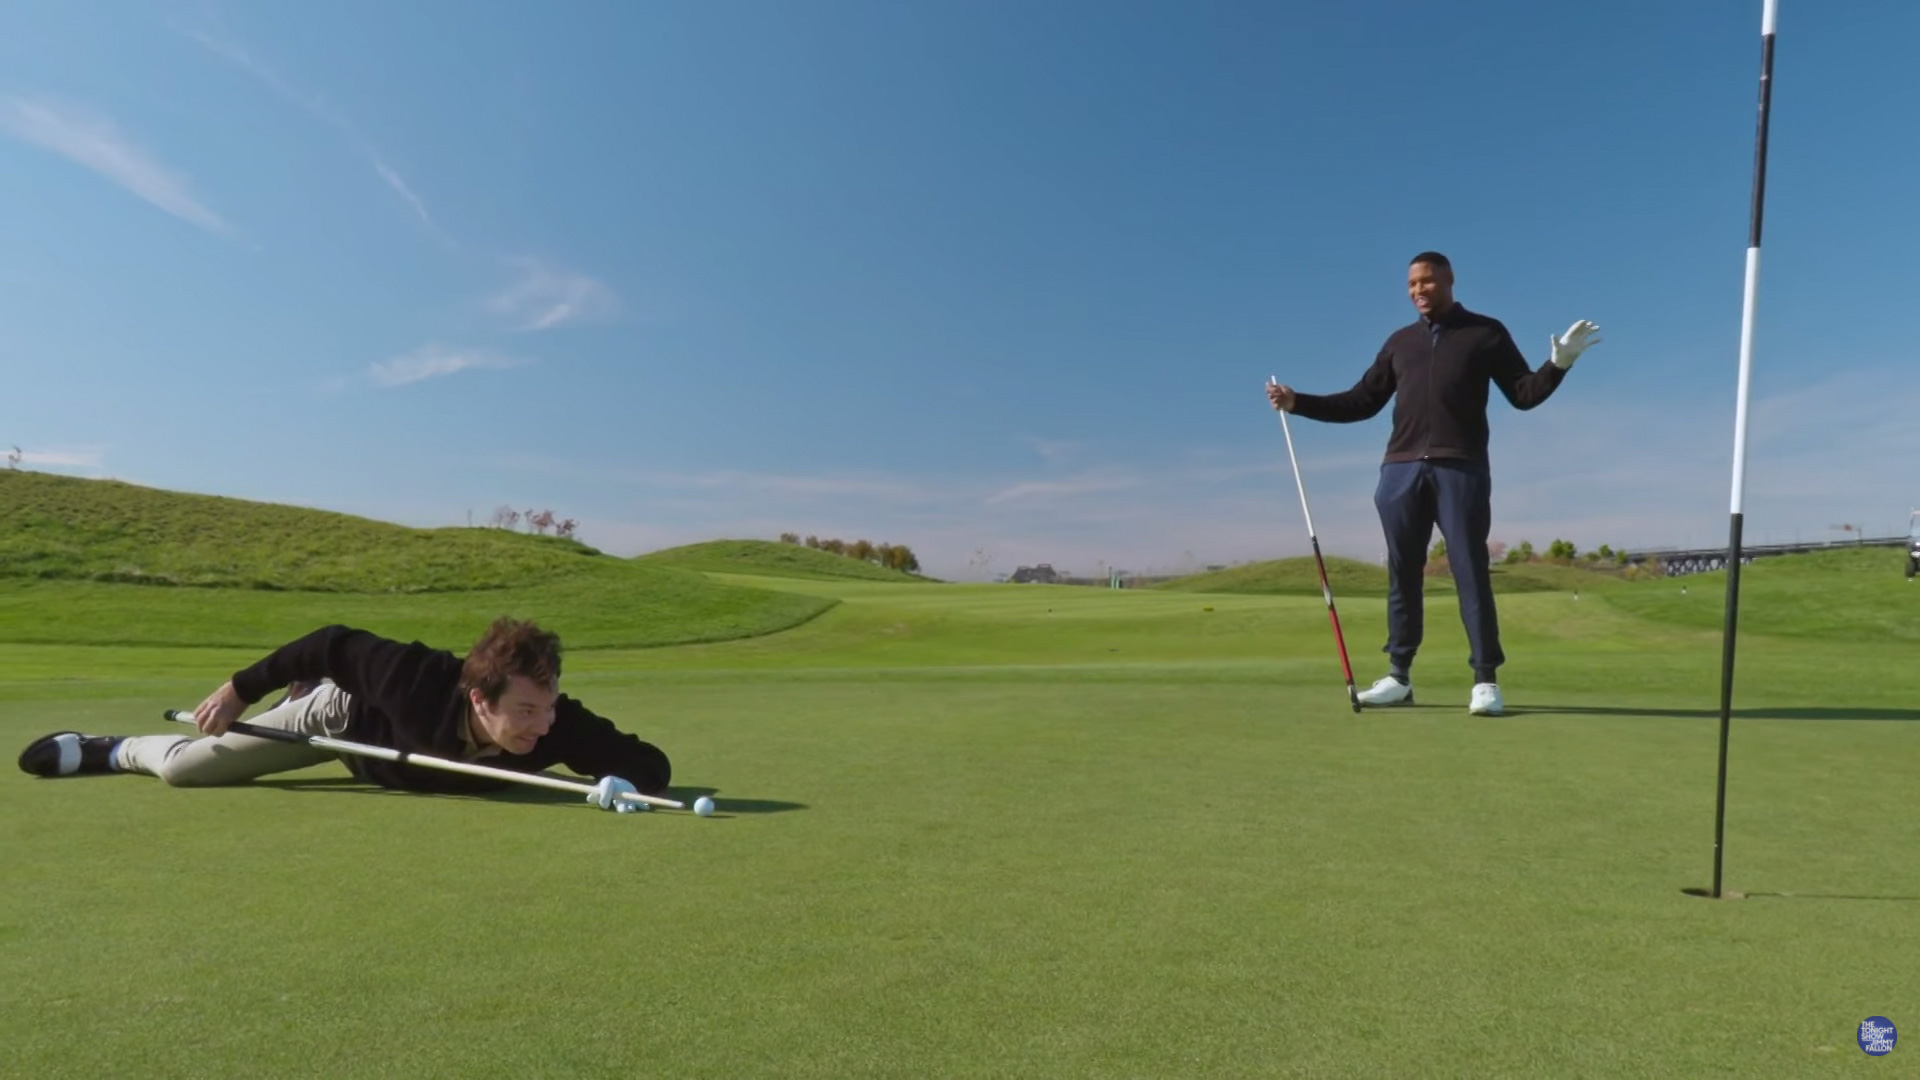 """Jimmy Fallon and Michael Strahan Play Golf During """"Tonight Show"""" Interview"""